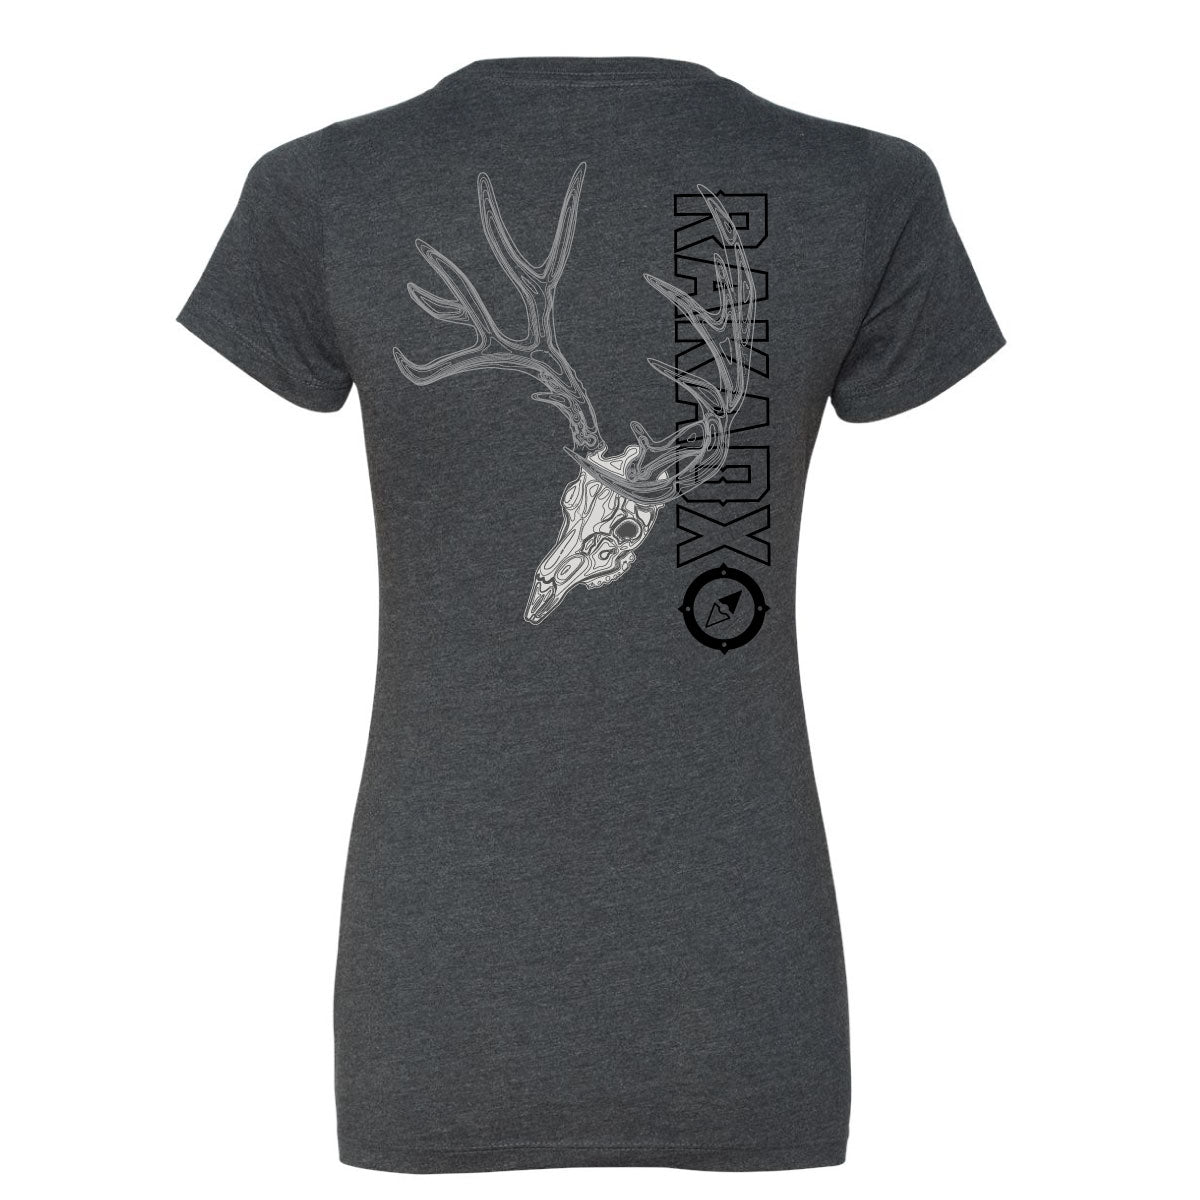 Ladies Topo Muley Shirt